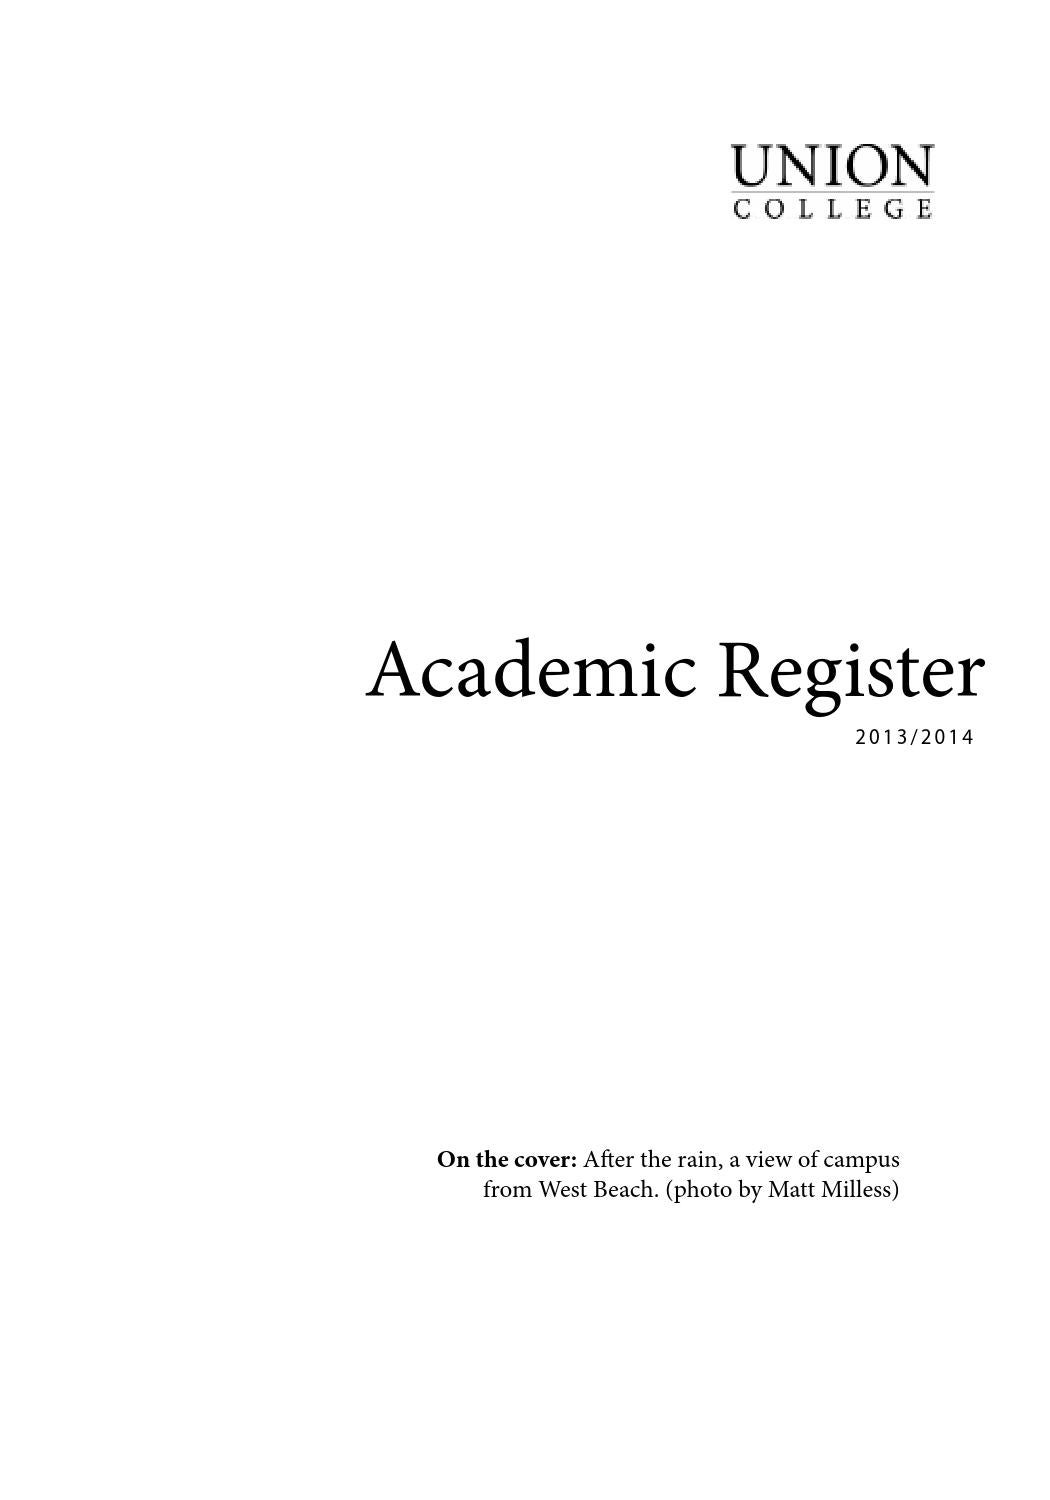 Can I transfer to USC with a 3.0 ish GPA in engineering coursework?